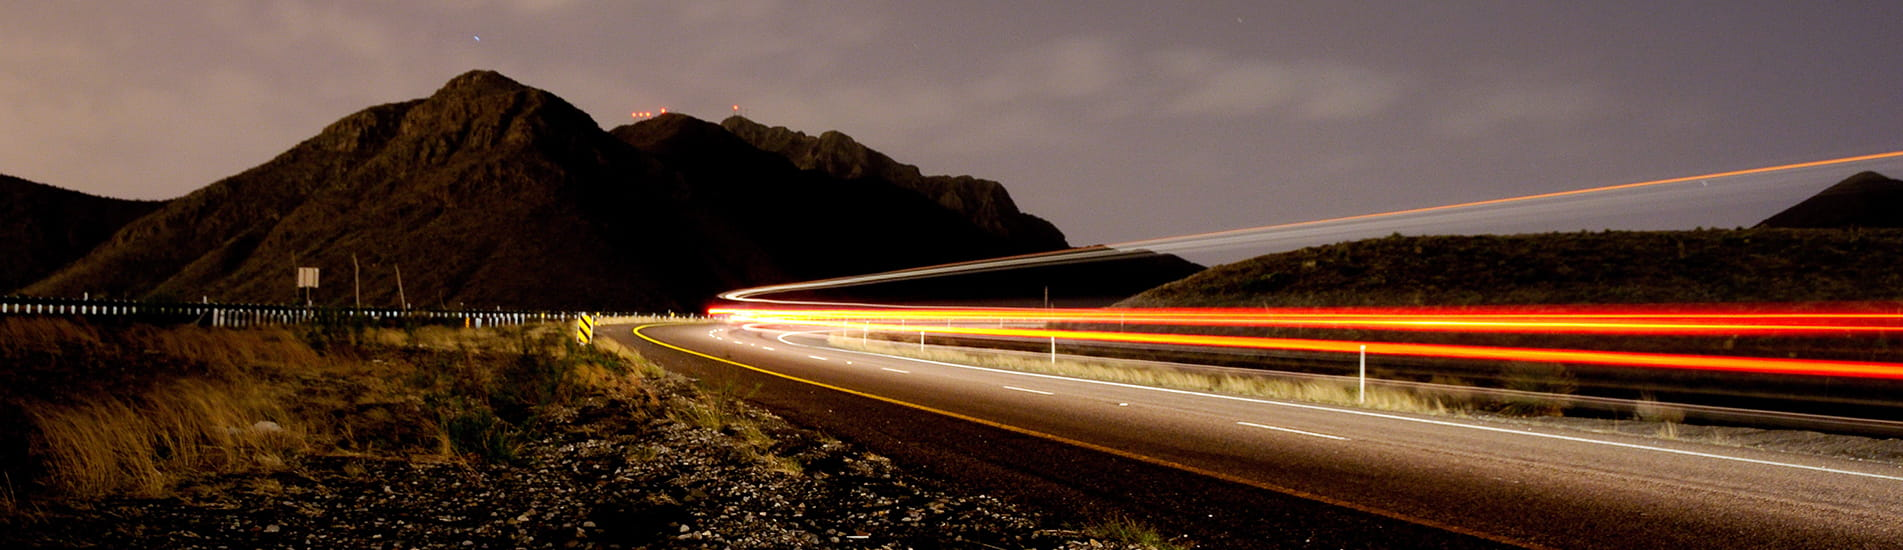 Highway at night with blurry lights and a mountain in the background.